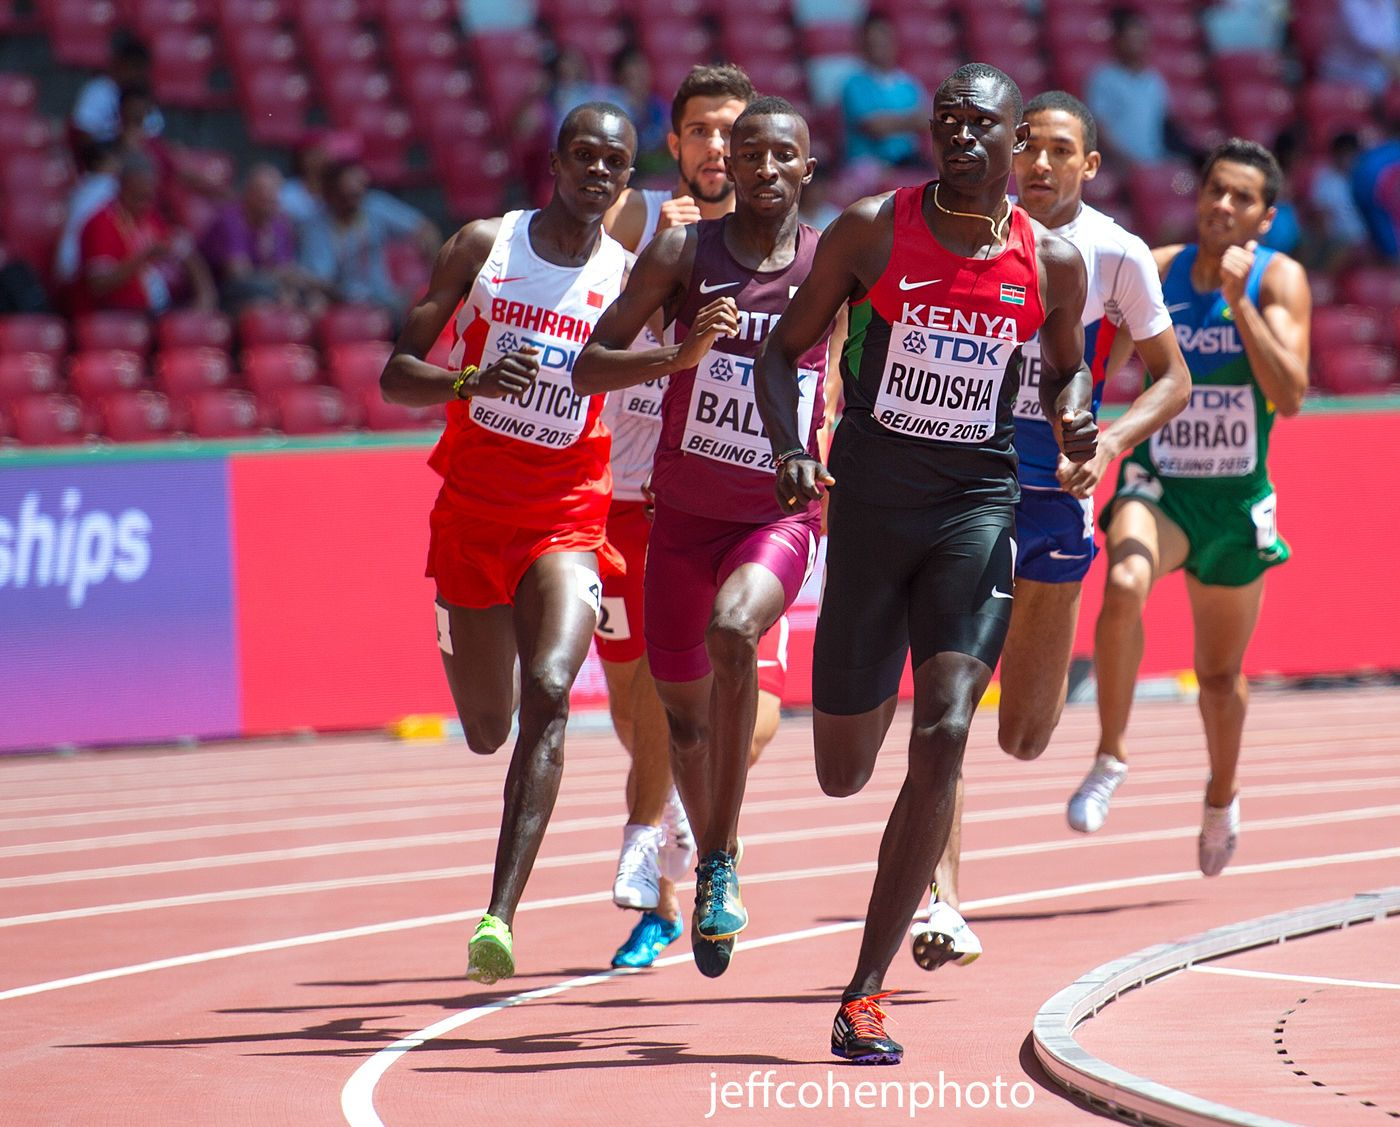 1beijing2015_day_1_rudisha_800m_jeff_cohen_photo915_web.jpg